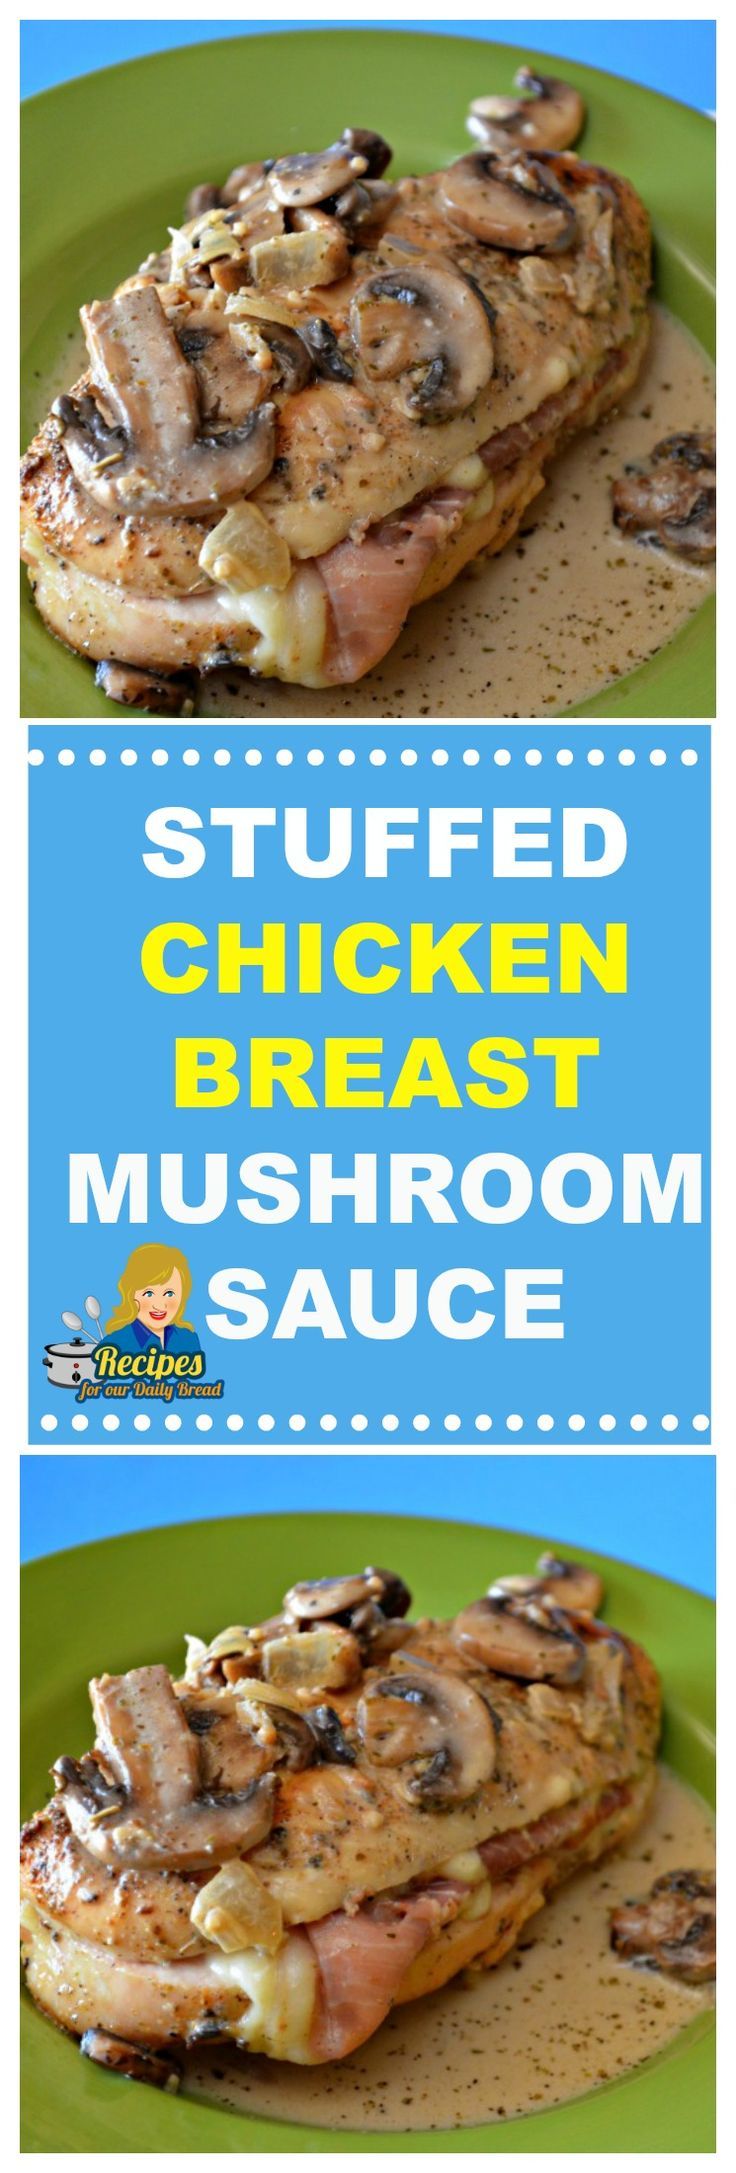 INSANE STUFFED CHICKEN BREAST CREAMY MUSHROOM SAUCE